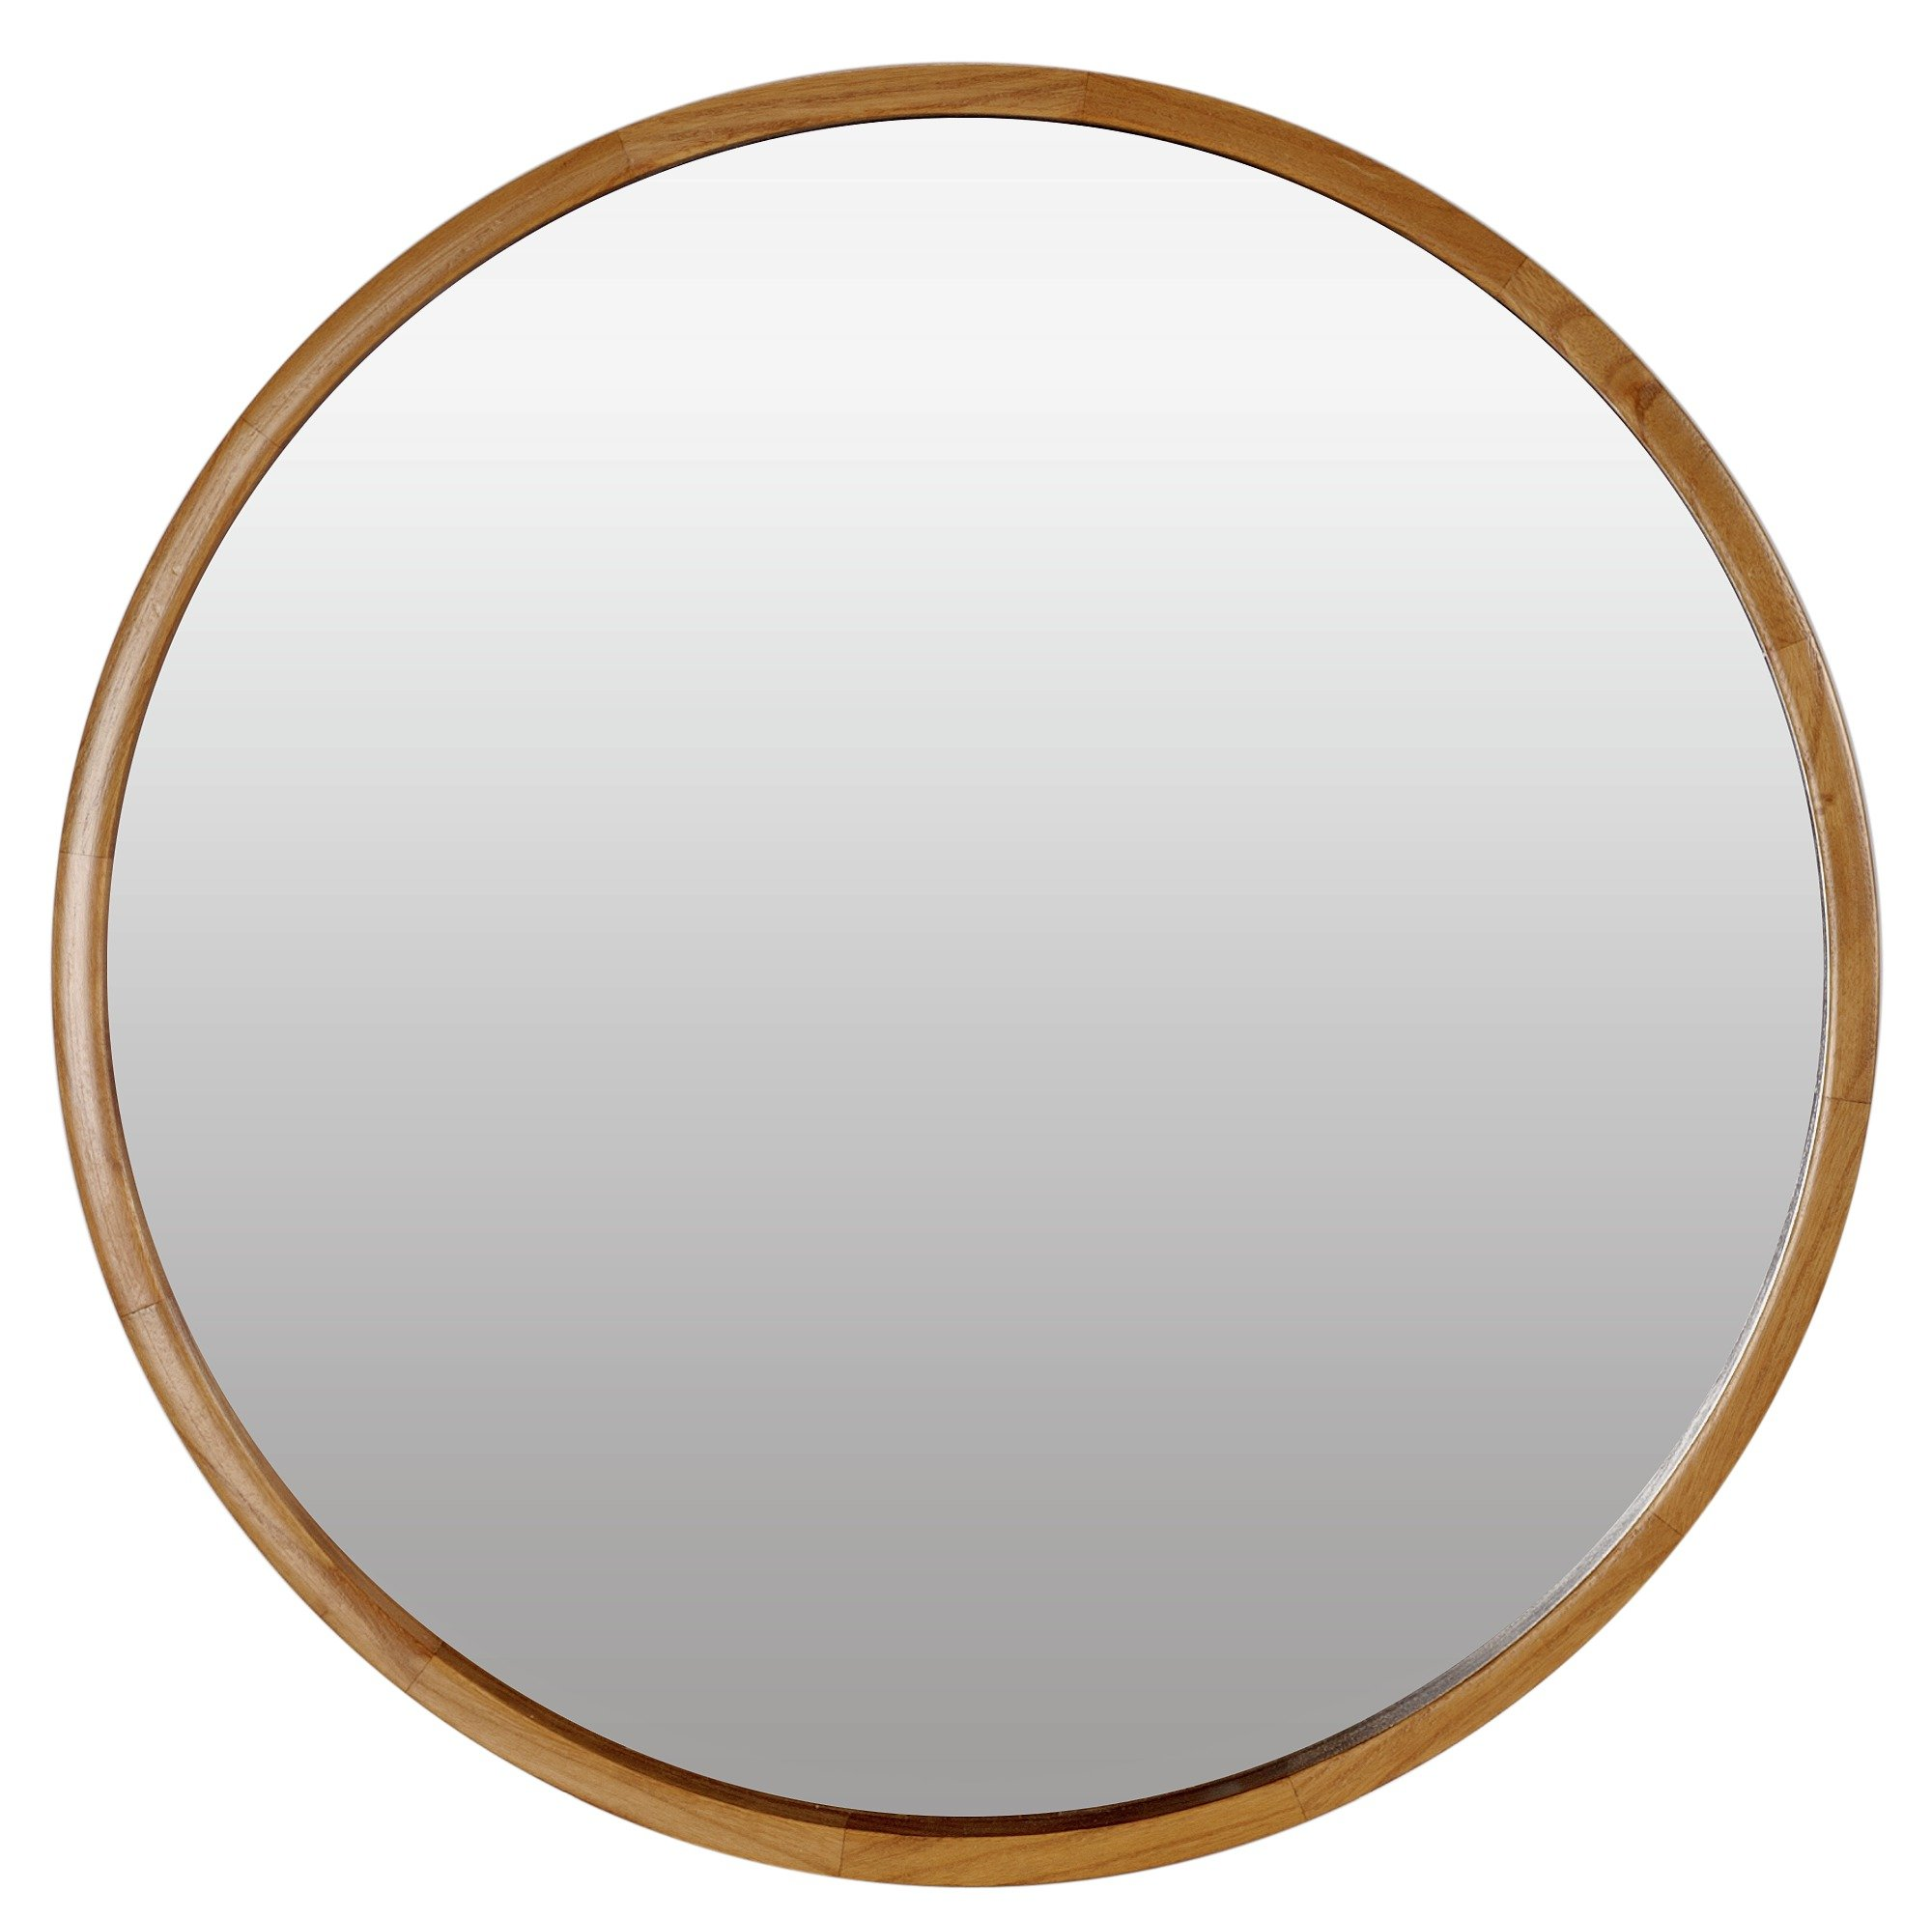 Oval Mirror Silver Frame Wall Mirror Clipart 20 Free Cliparts Download Images On